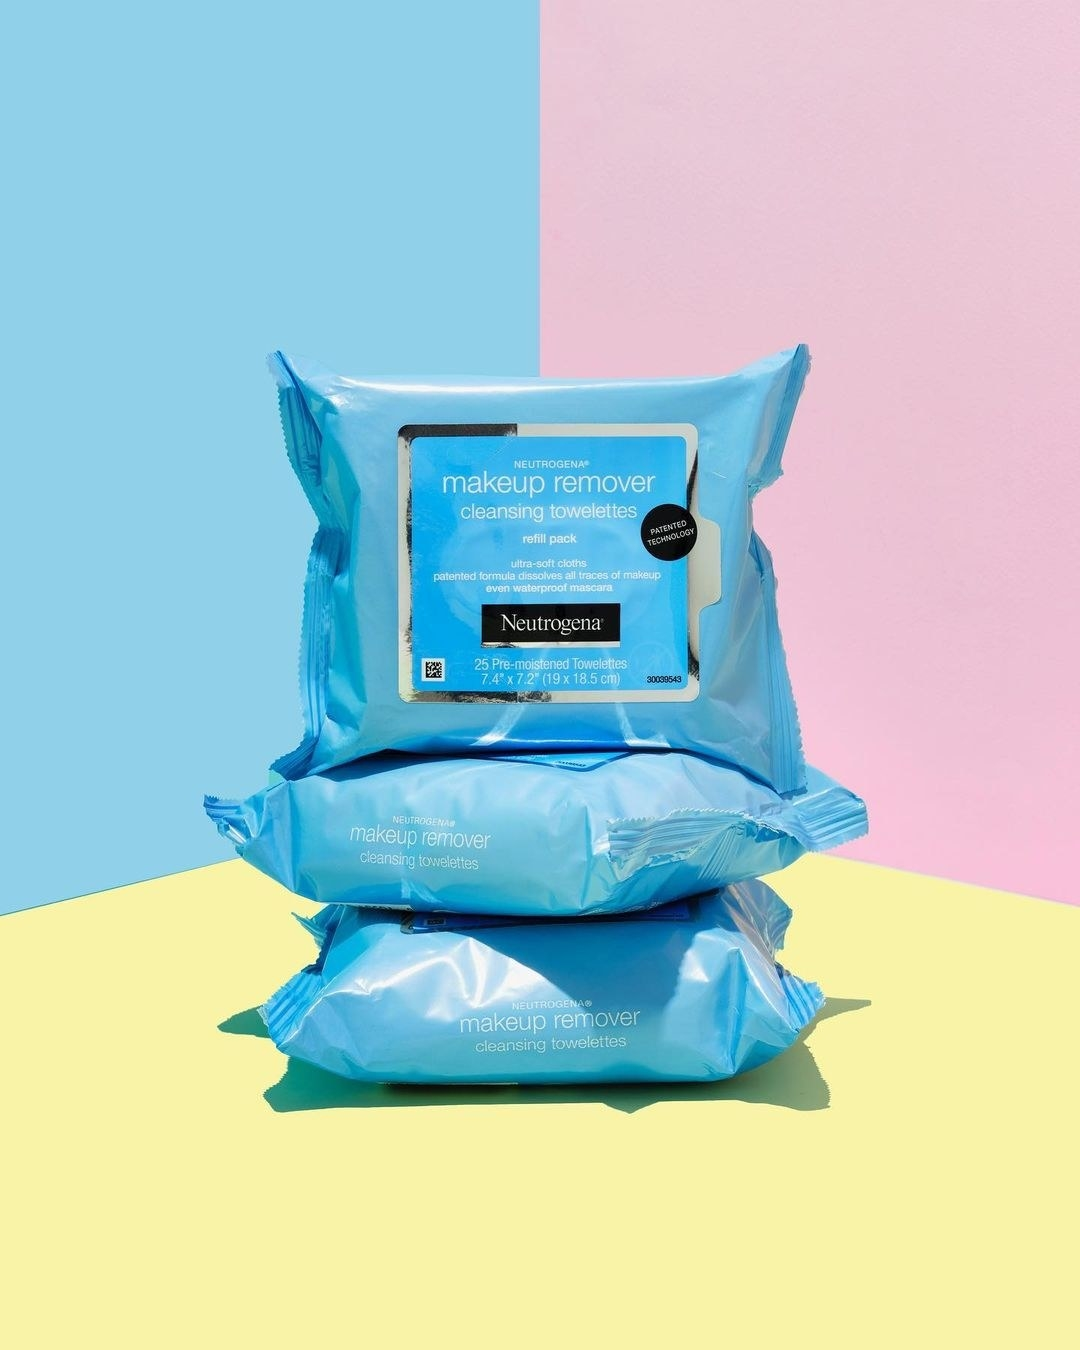 Neutrogrena makeup removing wipes